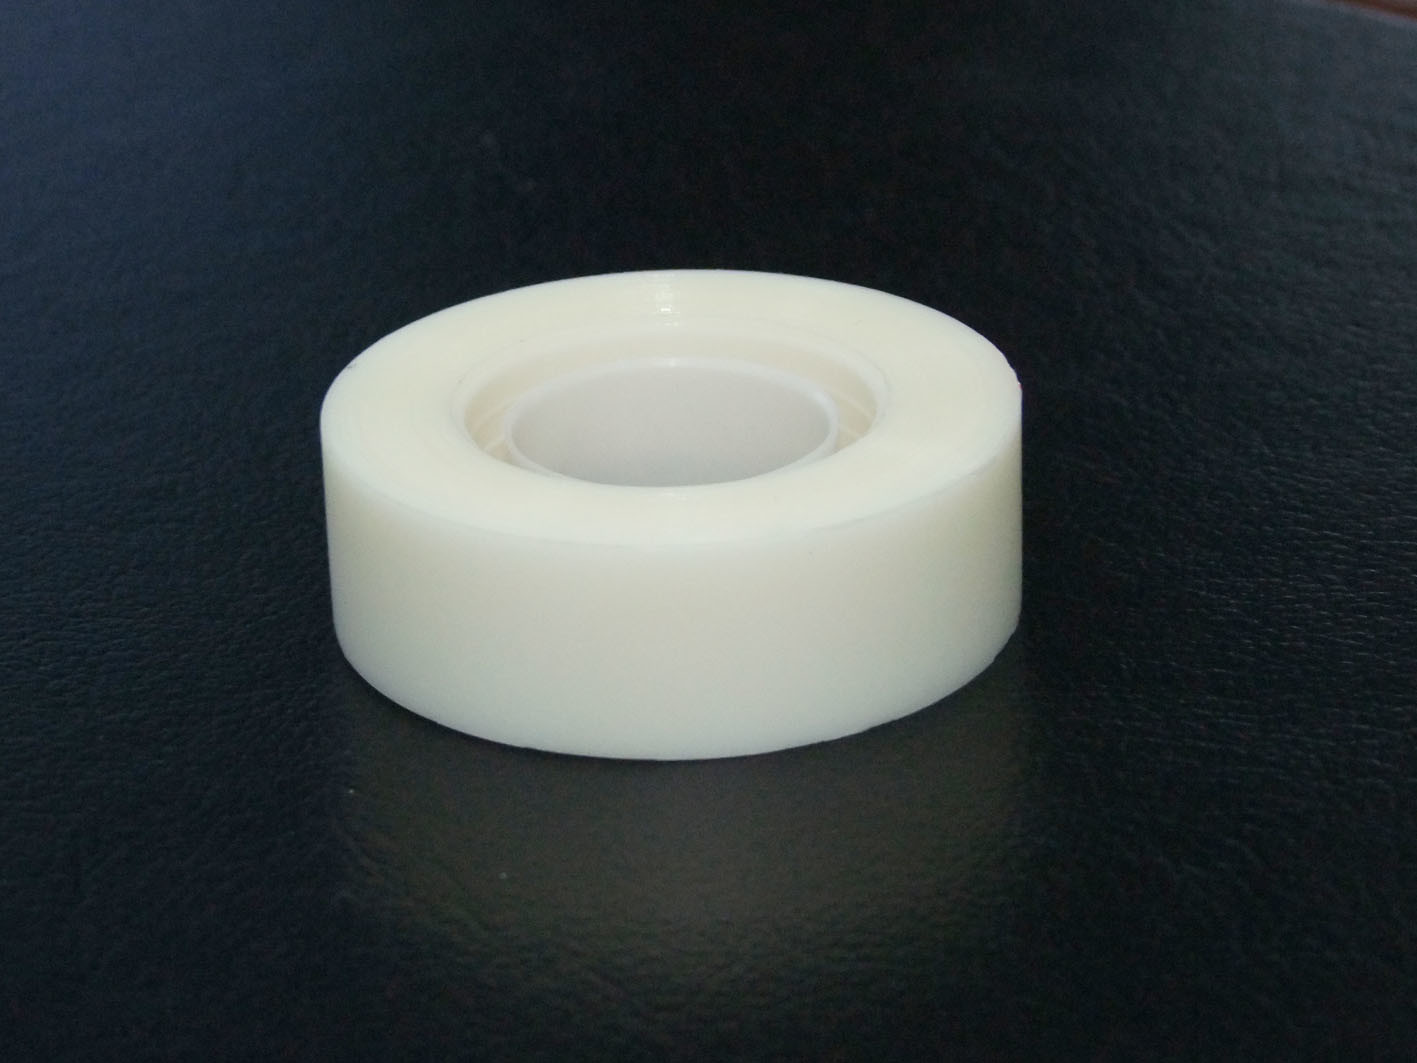 Writable Strong Adhesive Invisible Tape